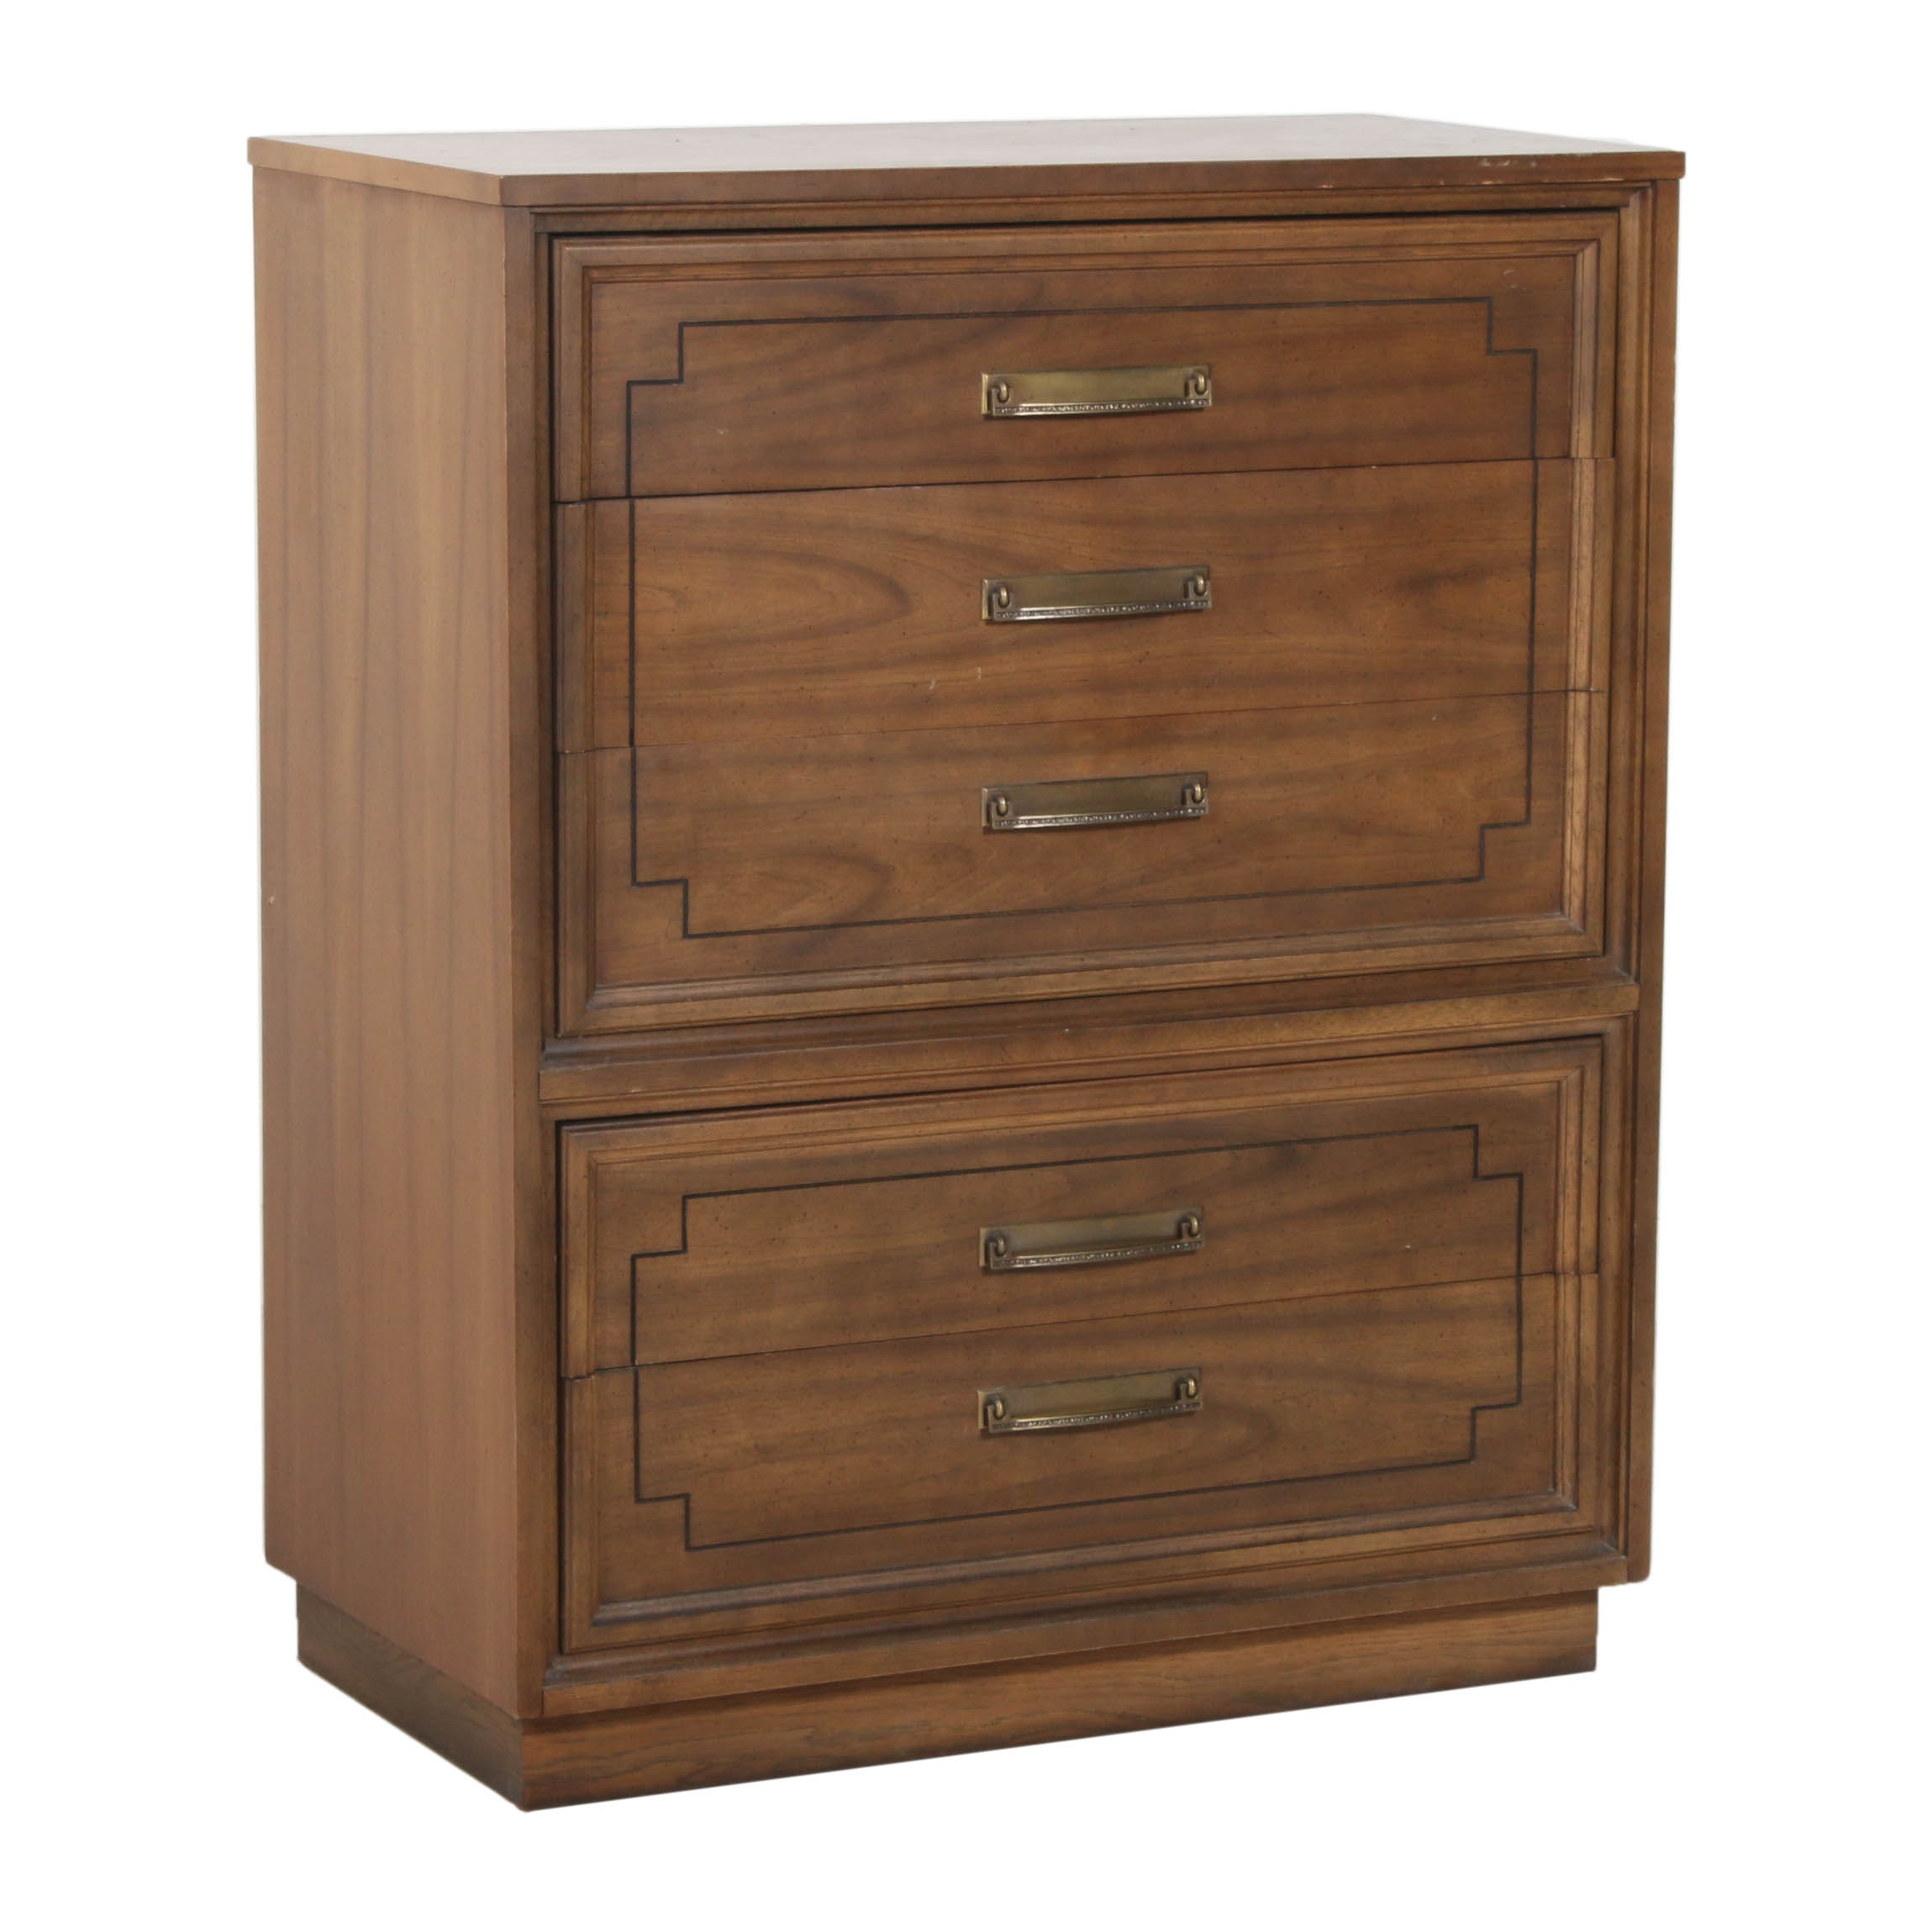 Dixie Furniture Chest of Drawers, Late 20th Century